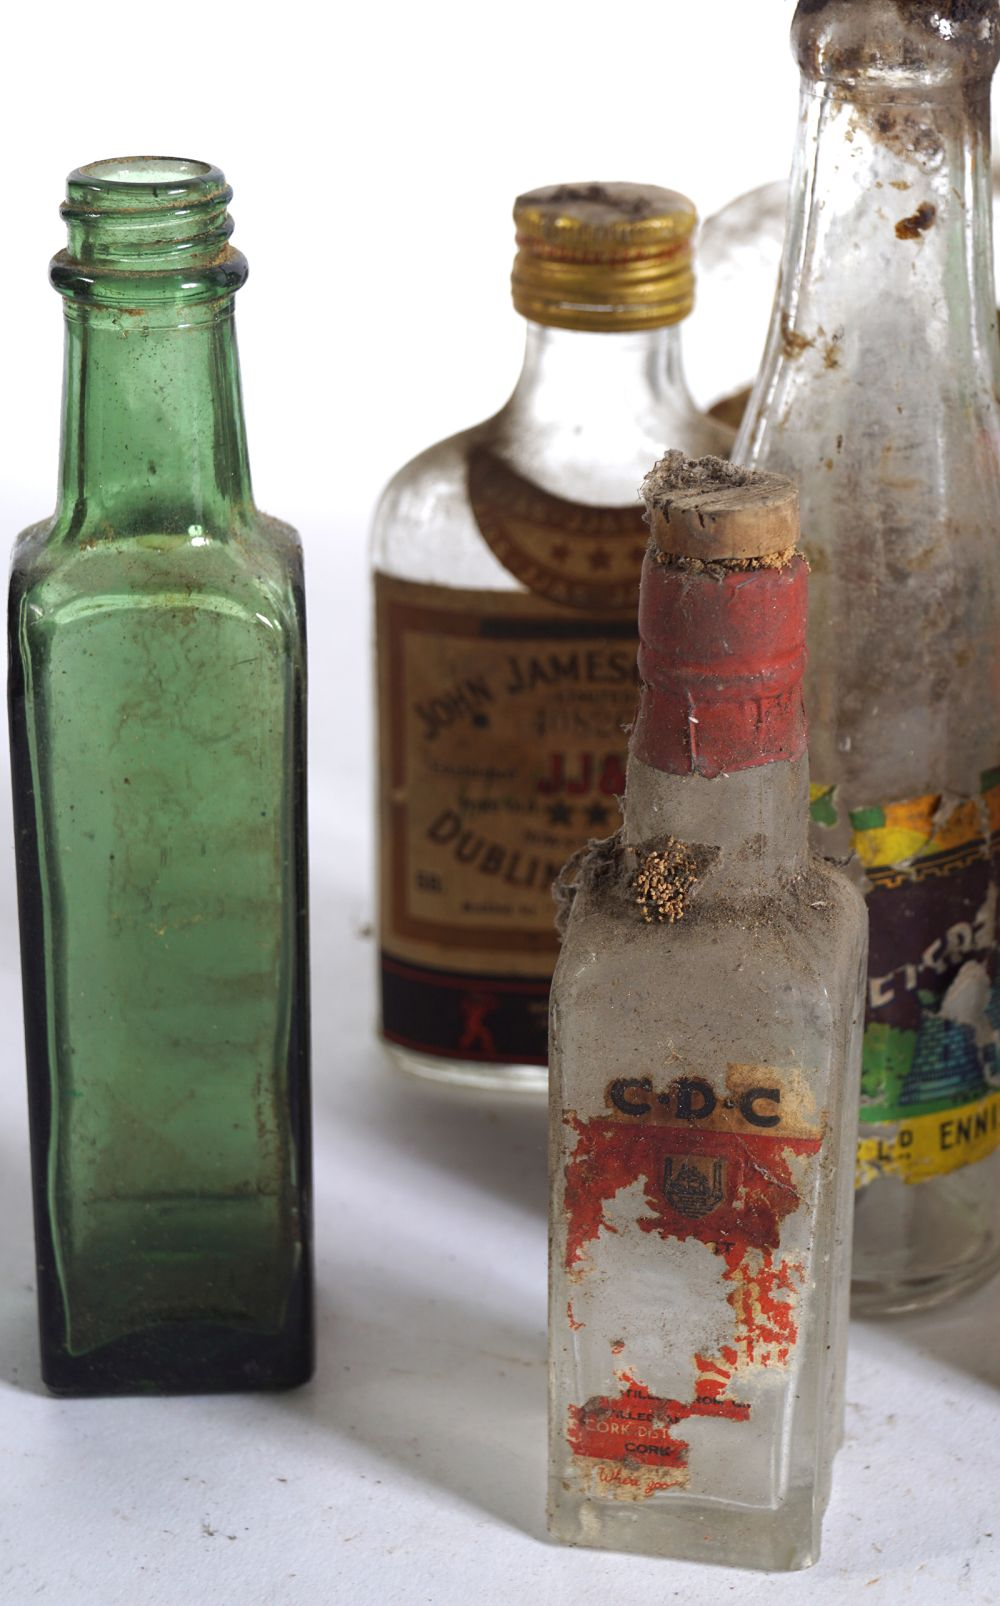 LOT OF 16 OLD WHISKEY AND BEER BOTTLES - Image 2 of 7